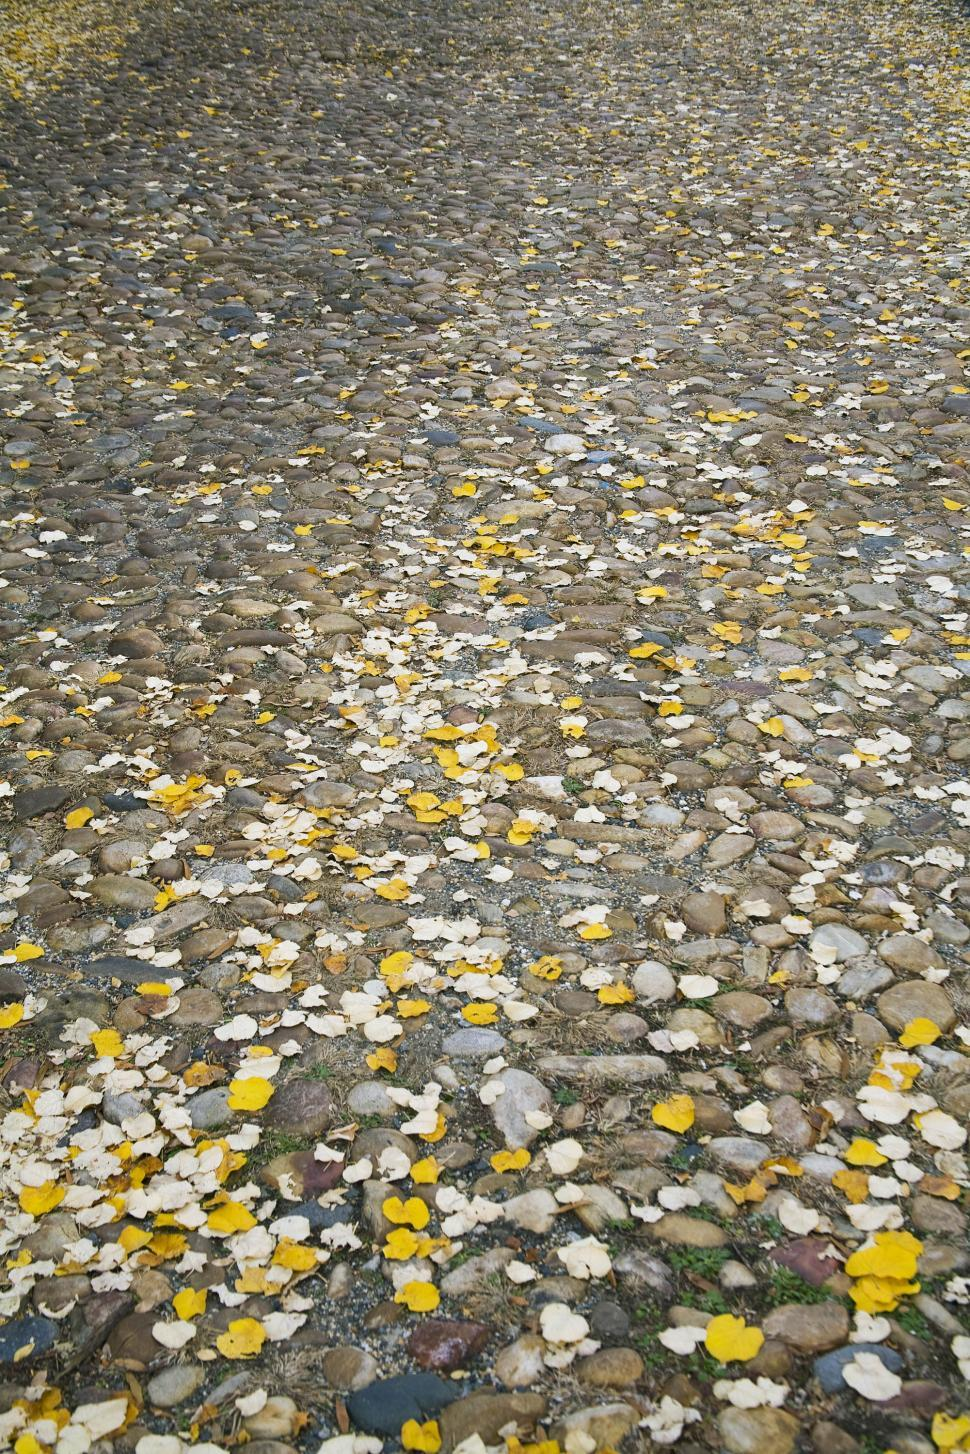 Download Free Stock HD Photo of  leaves on a stone path Online